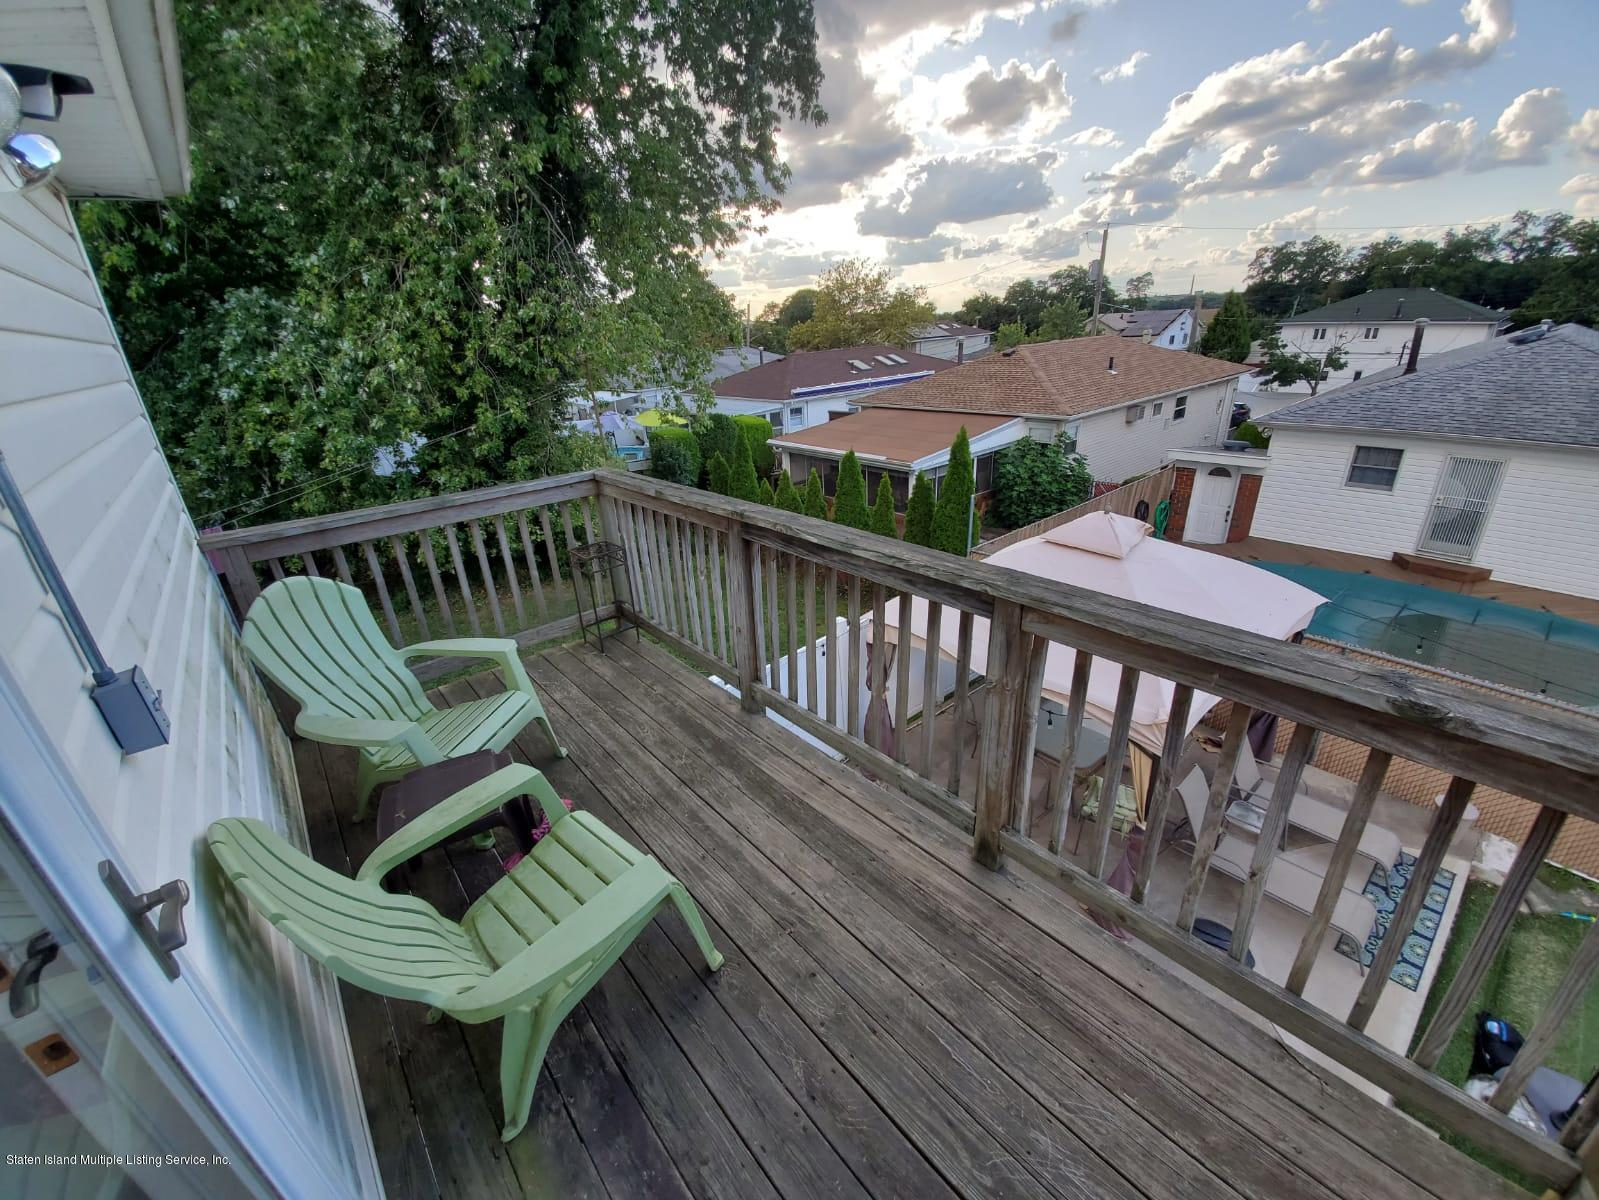 Single Family - Detached 63 Daleham Street  Staten Island, NY 10308, MLS-1131760-20